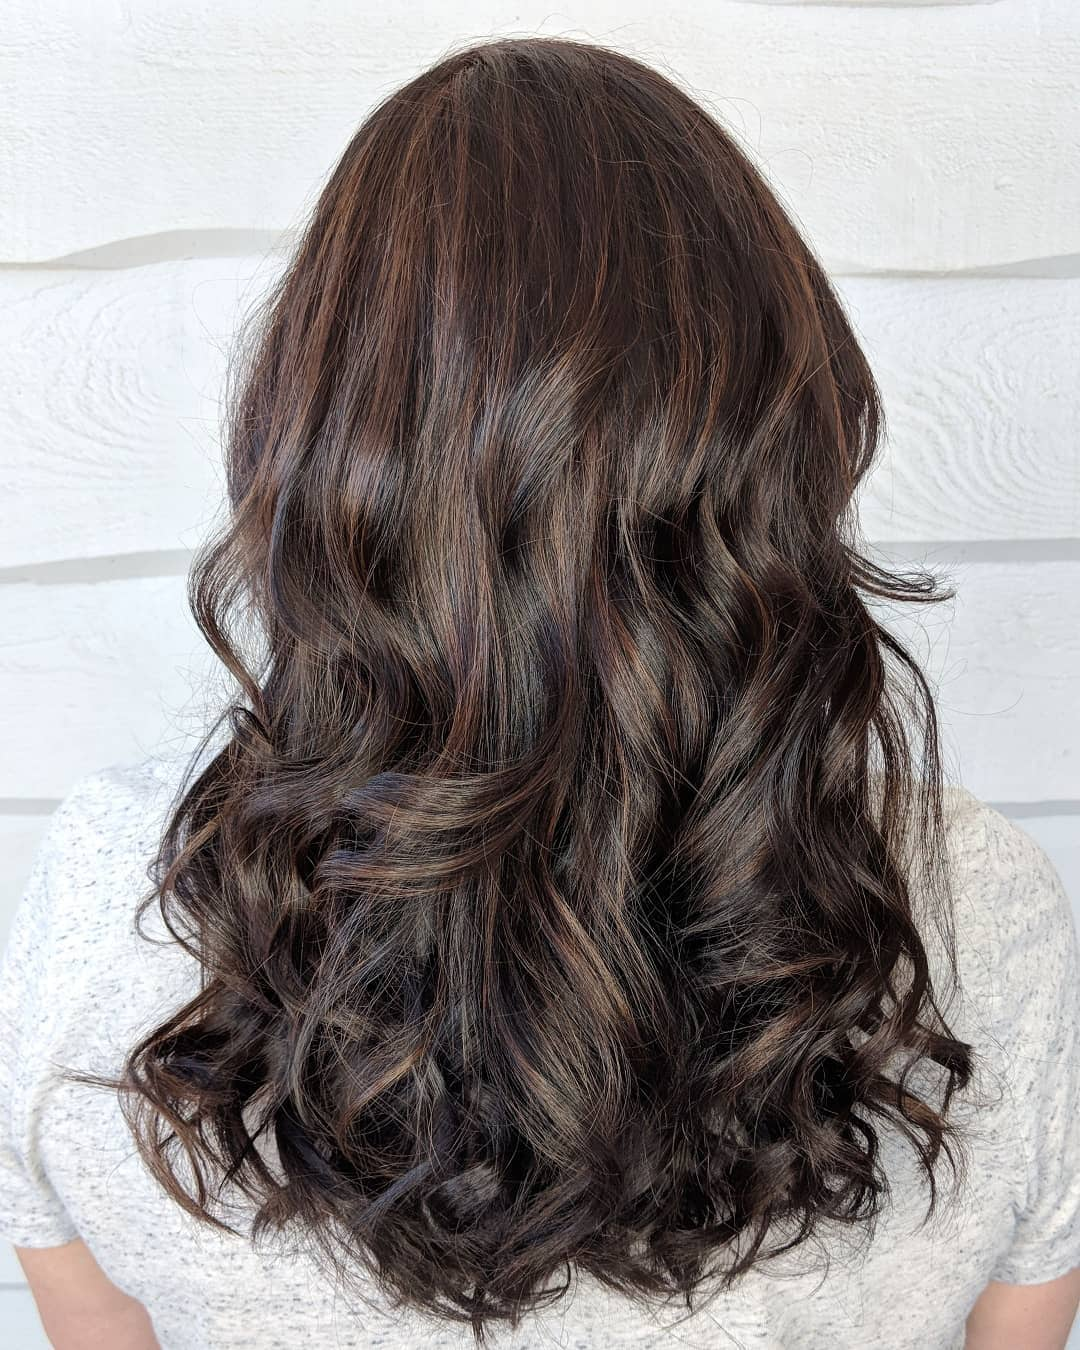 Woman with medium length curly brunette hair with mahogany highlights